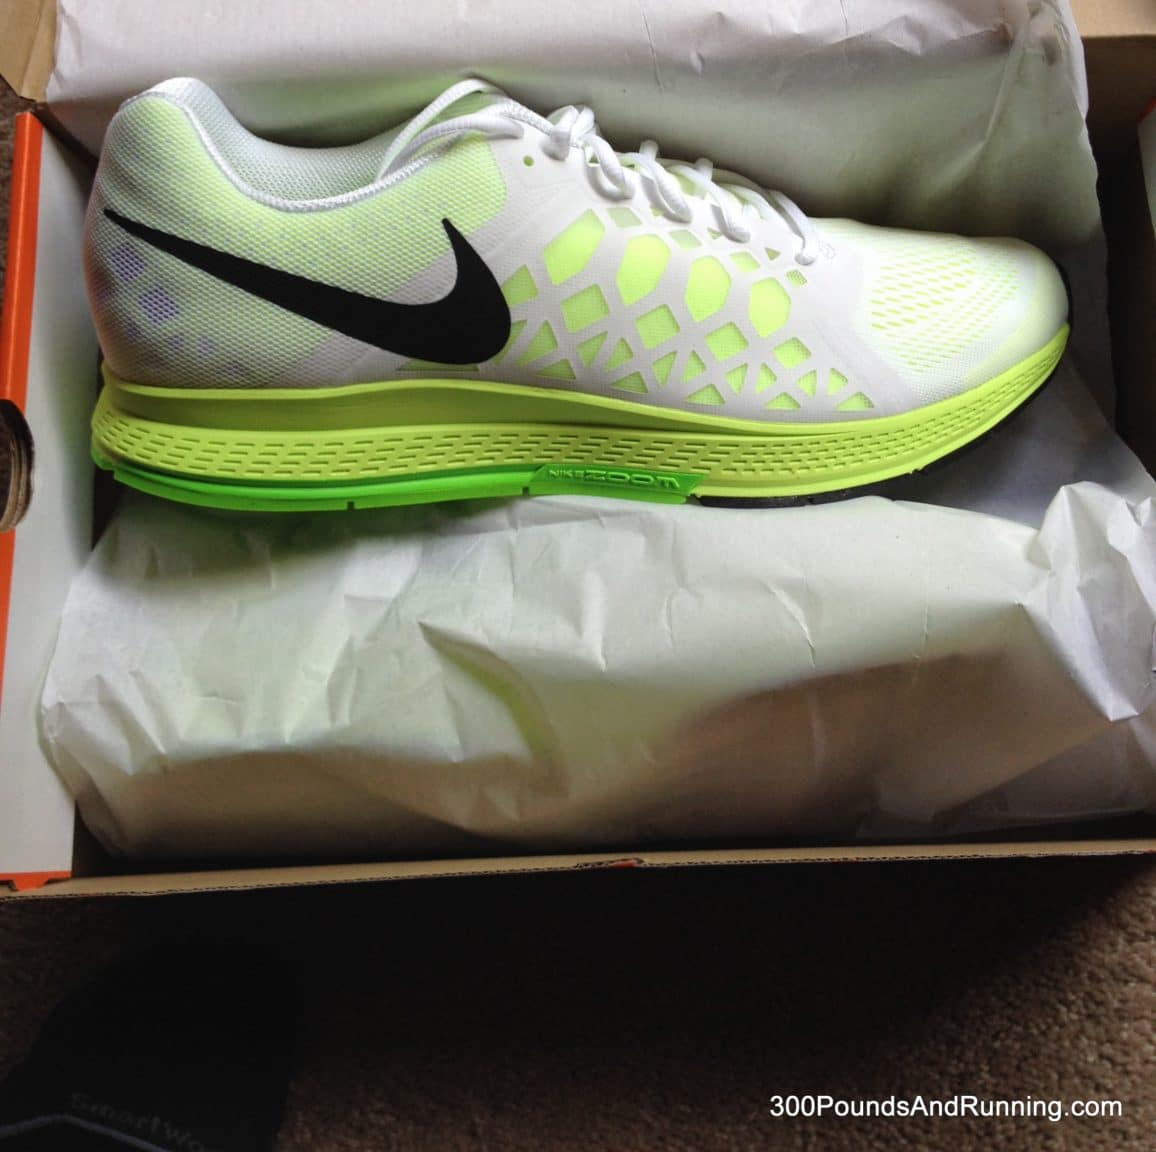 50130b6b5a05 Nike Air Zoom Pegasus 31 Running Shoe Review • 300 POUNDS AND RUNNING